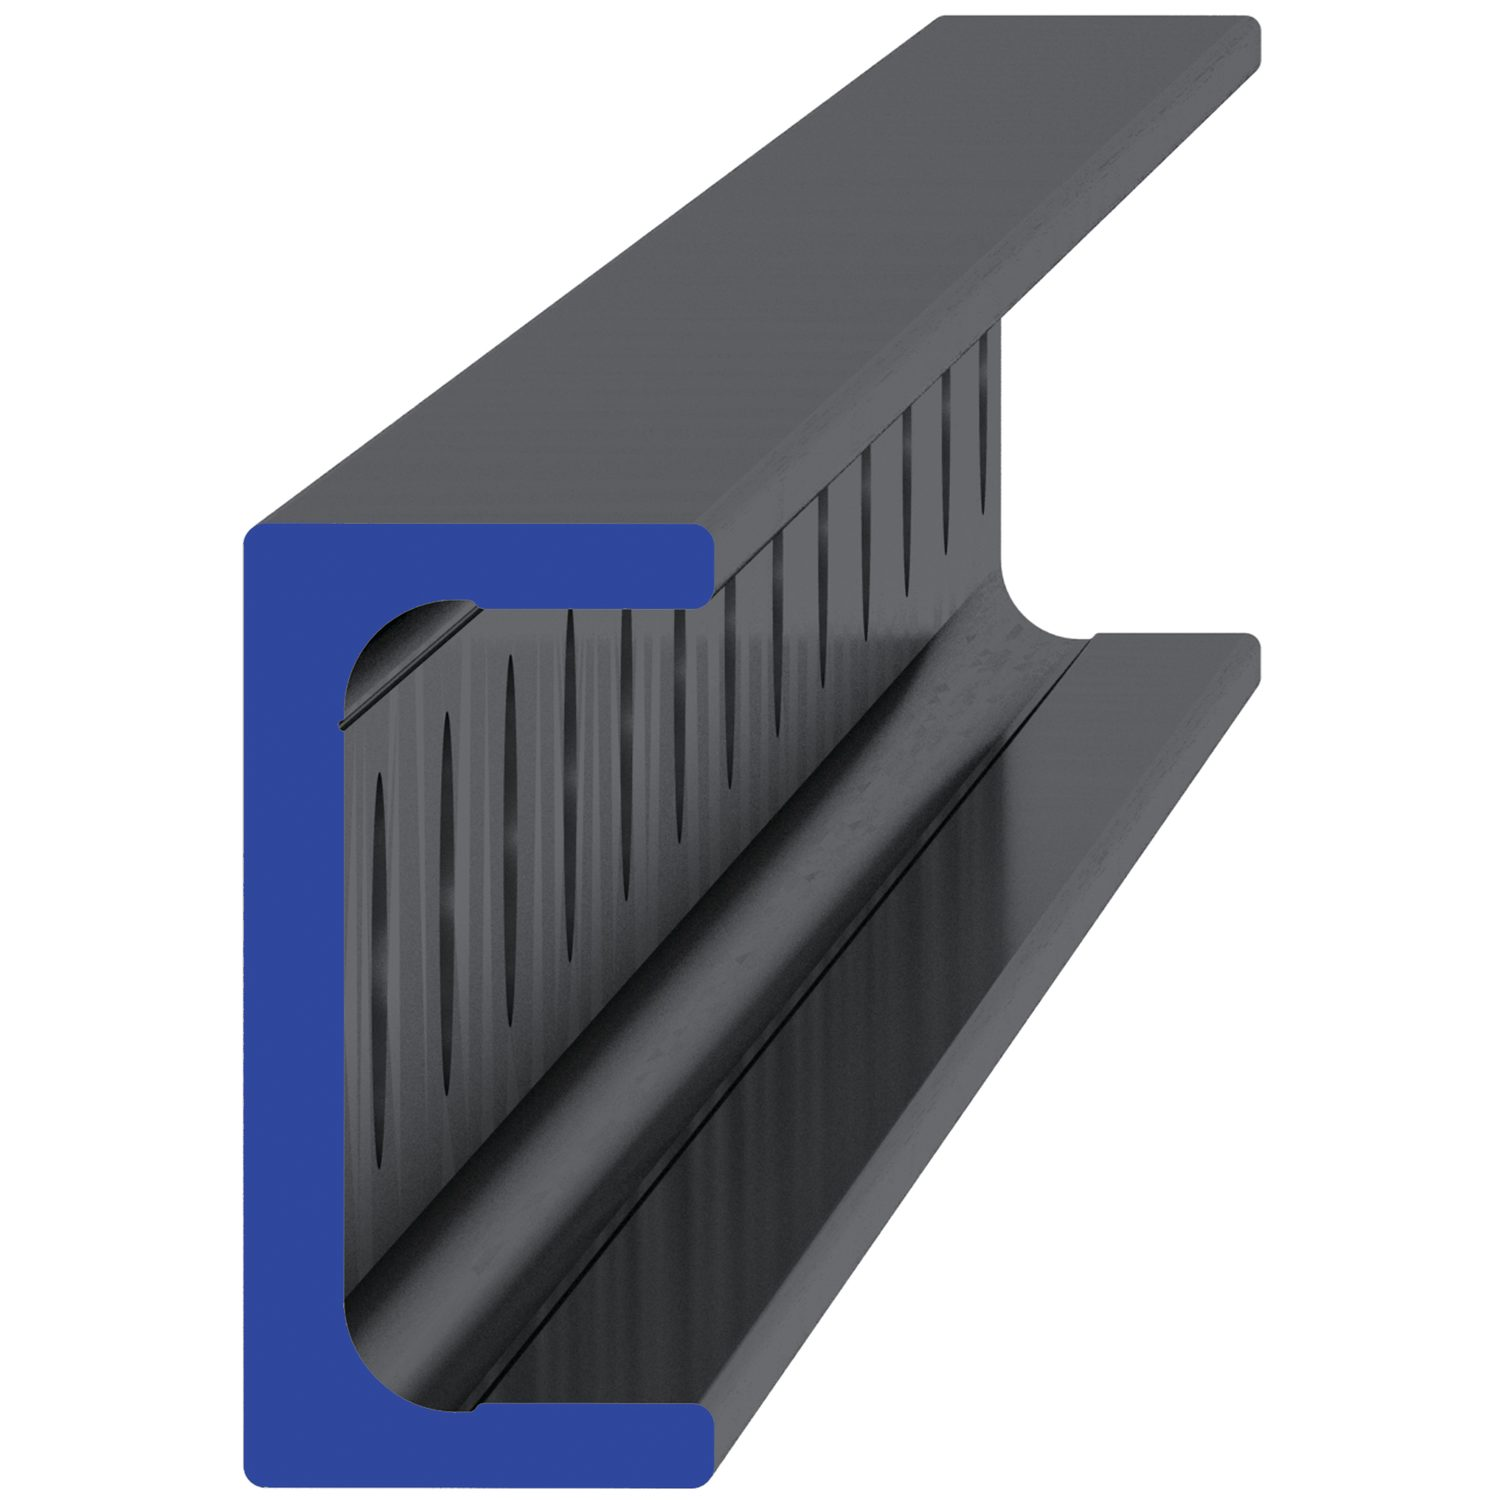 Product L1935.UL, Medium Duty U Rail counterbored holes /